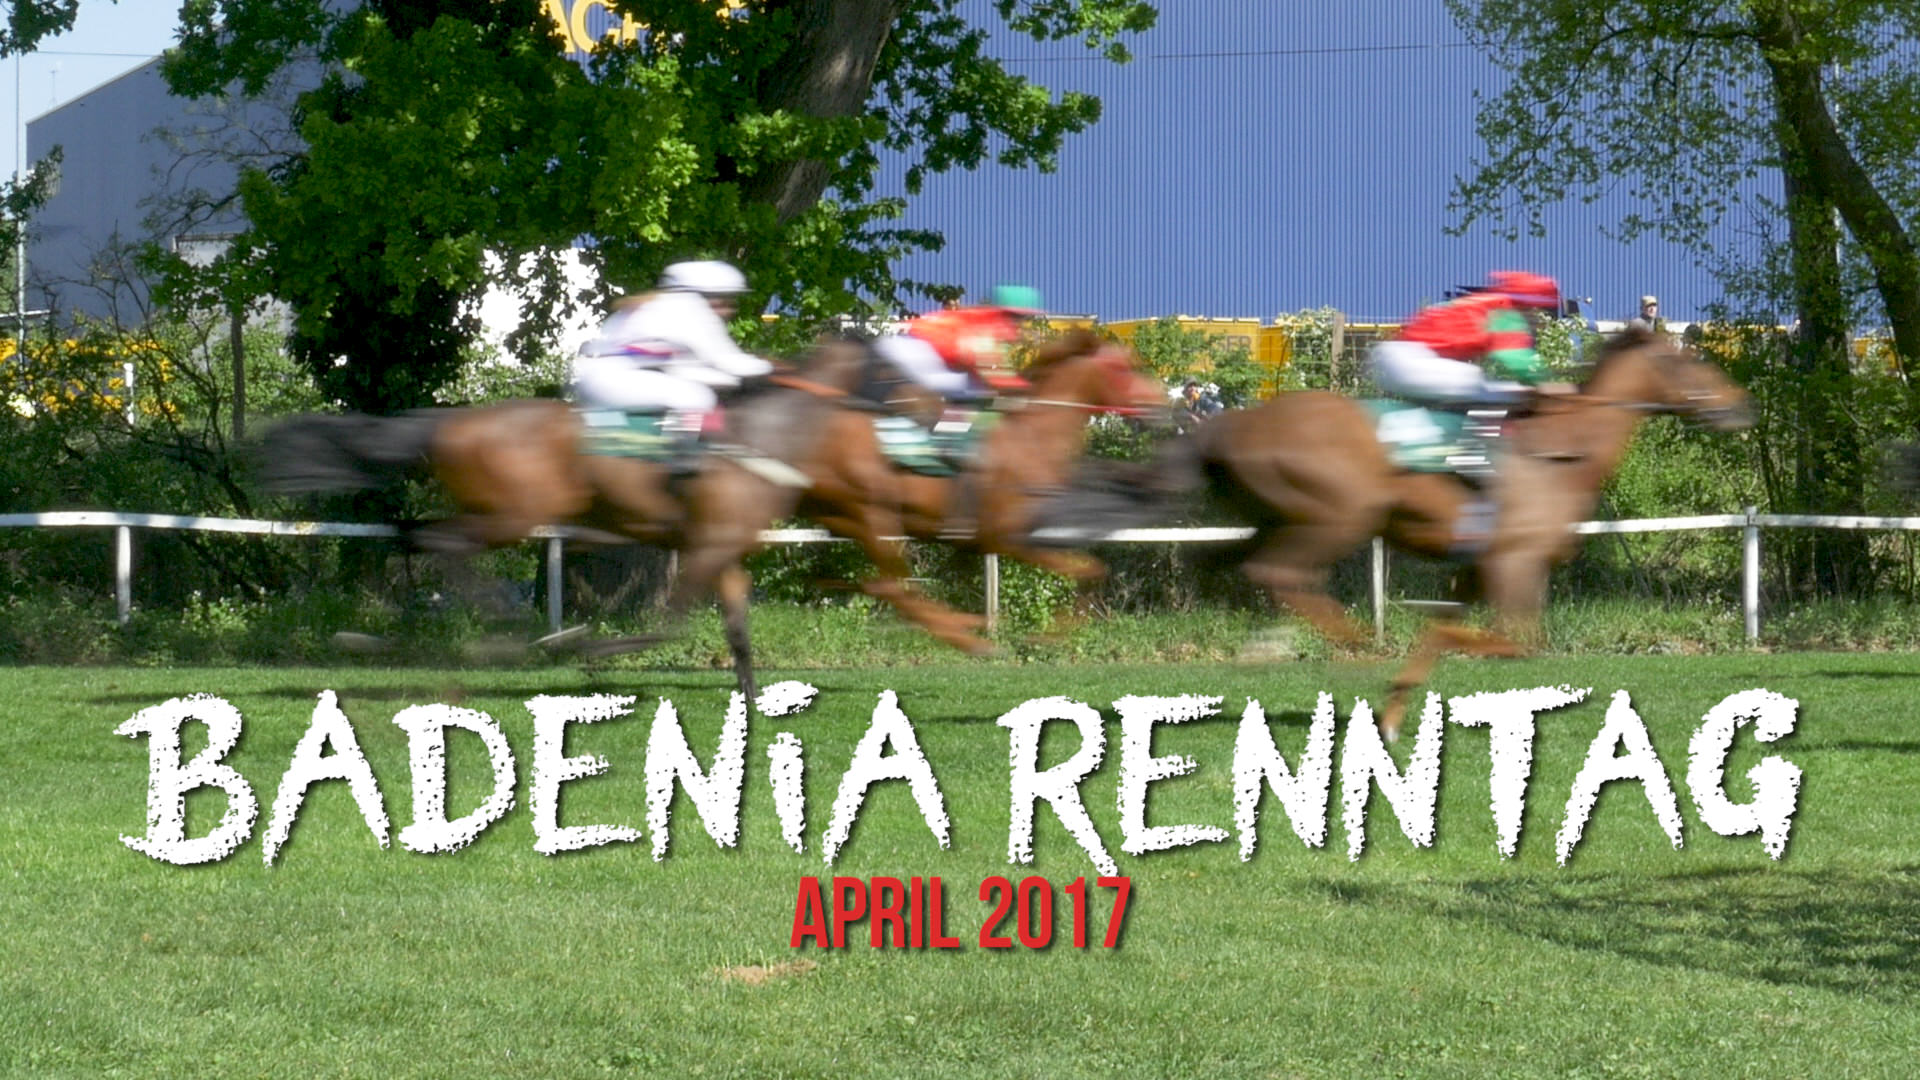 Badenia Renntag Eventfilm by Rawhunter